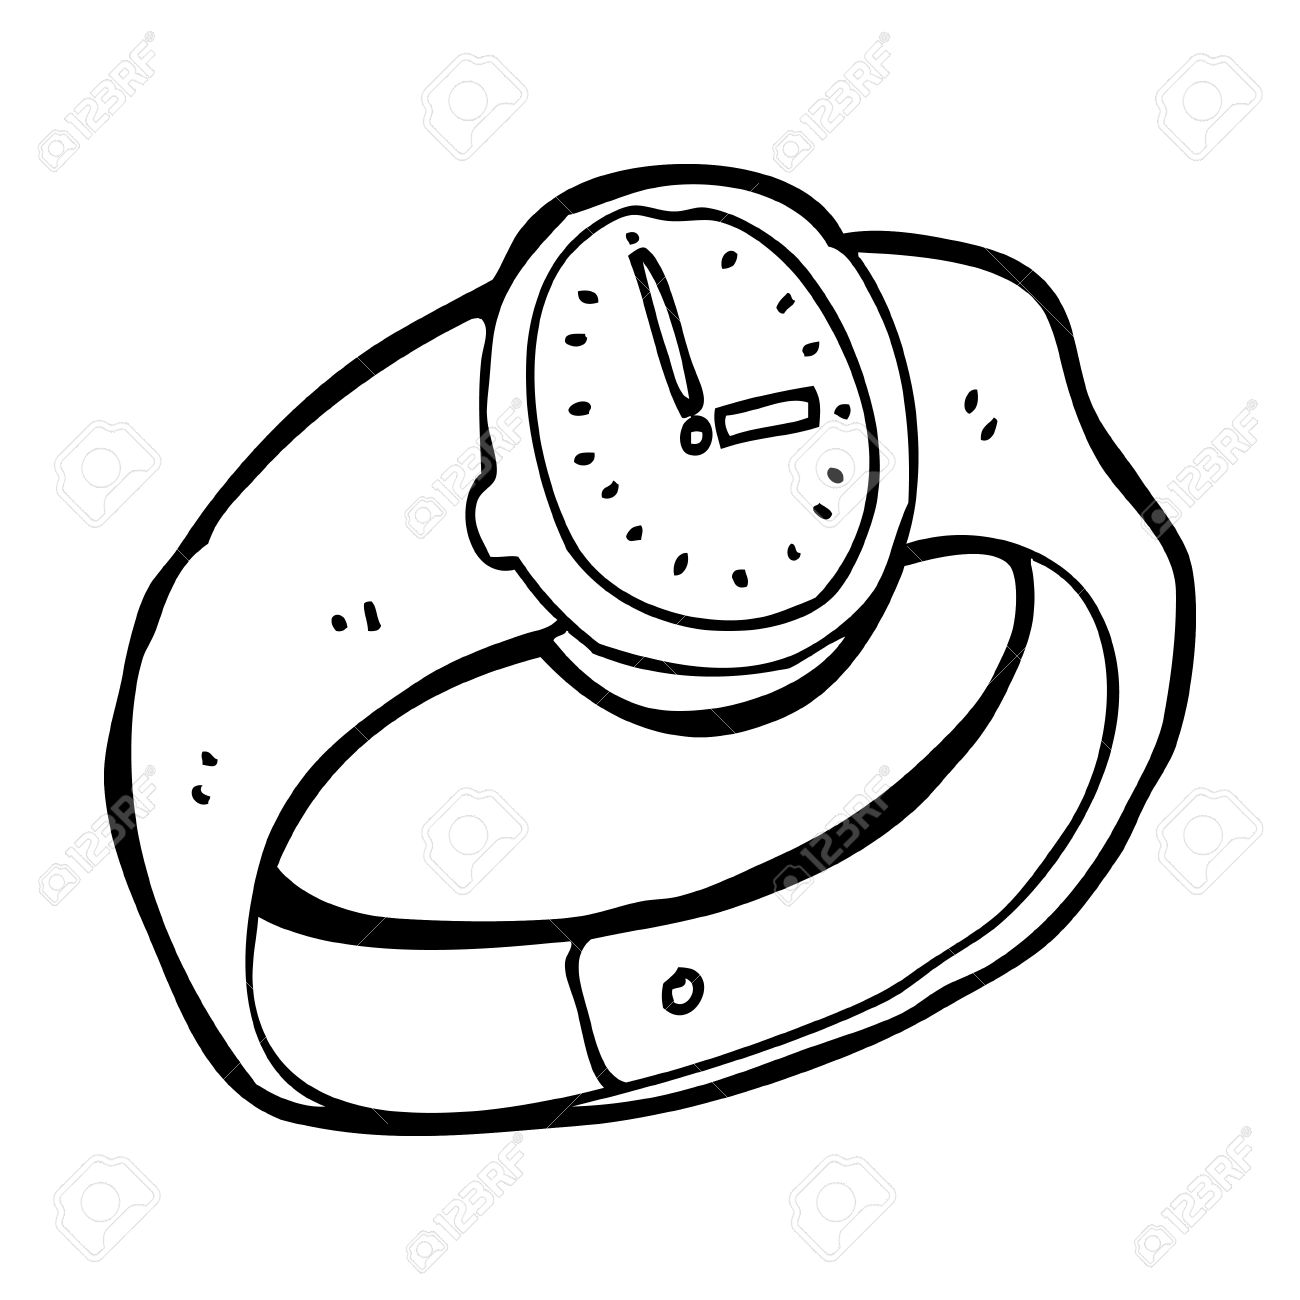 Watch black and white clipart clip freeuse download Watch Clipart Black And White | Free download best Watch ... clip freeuse download